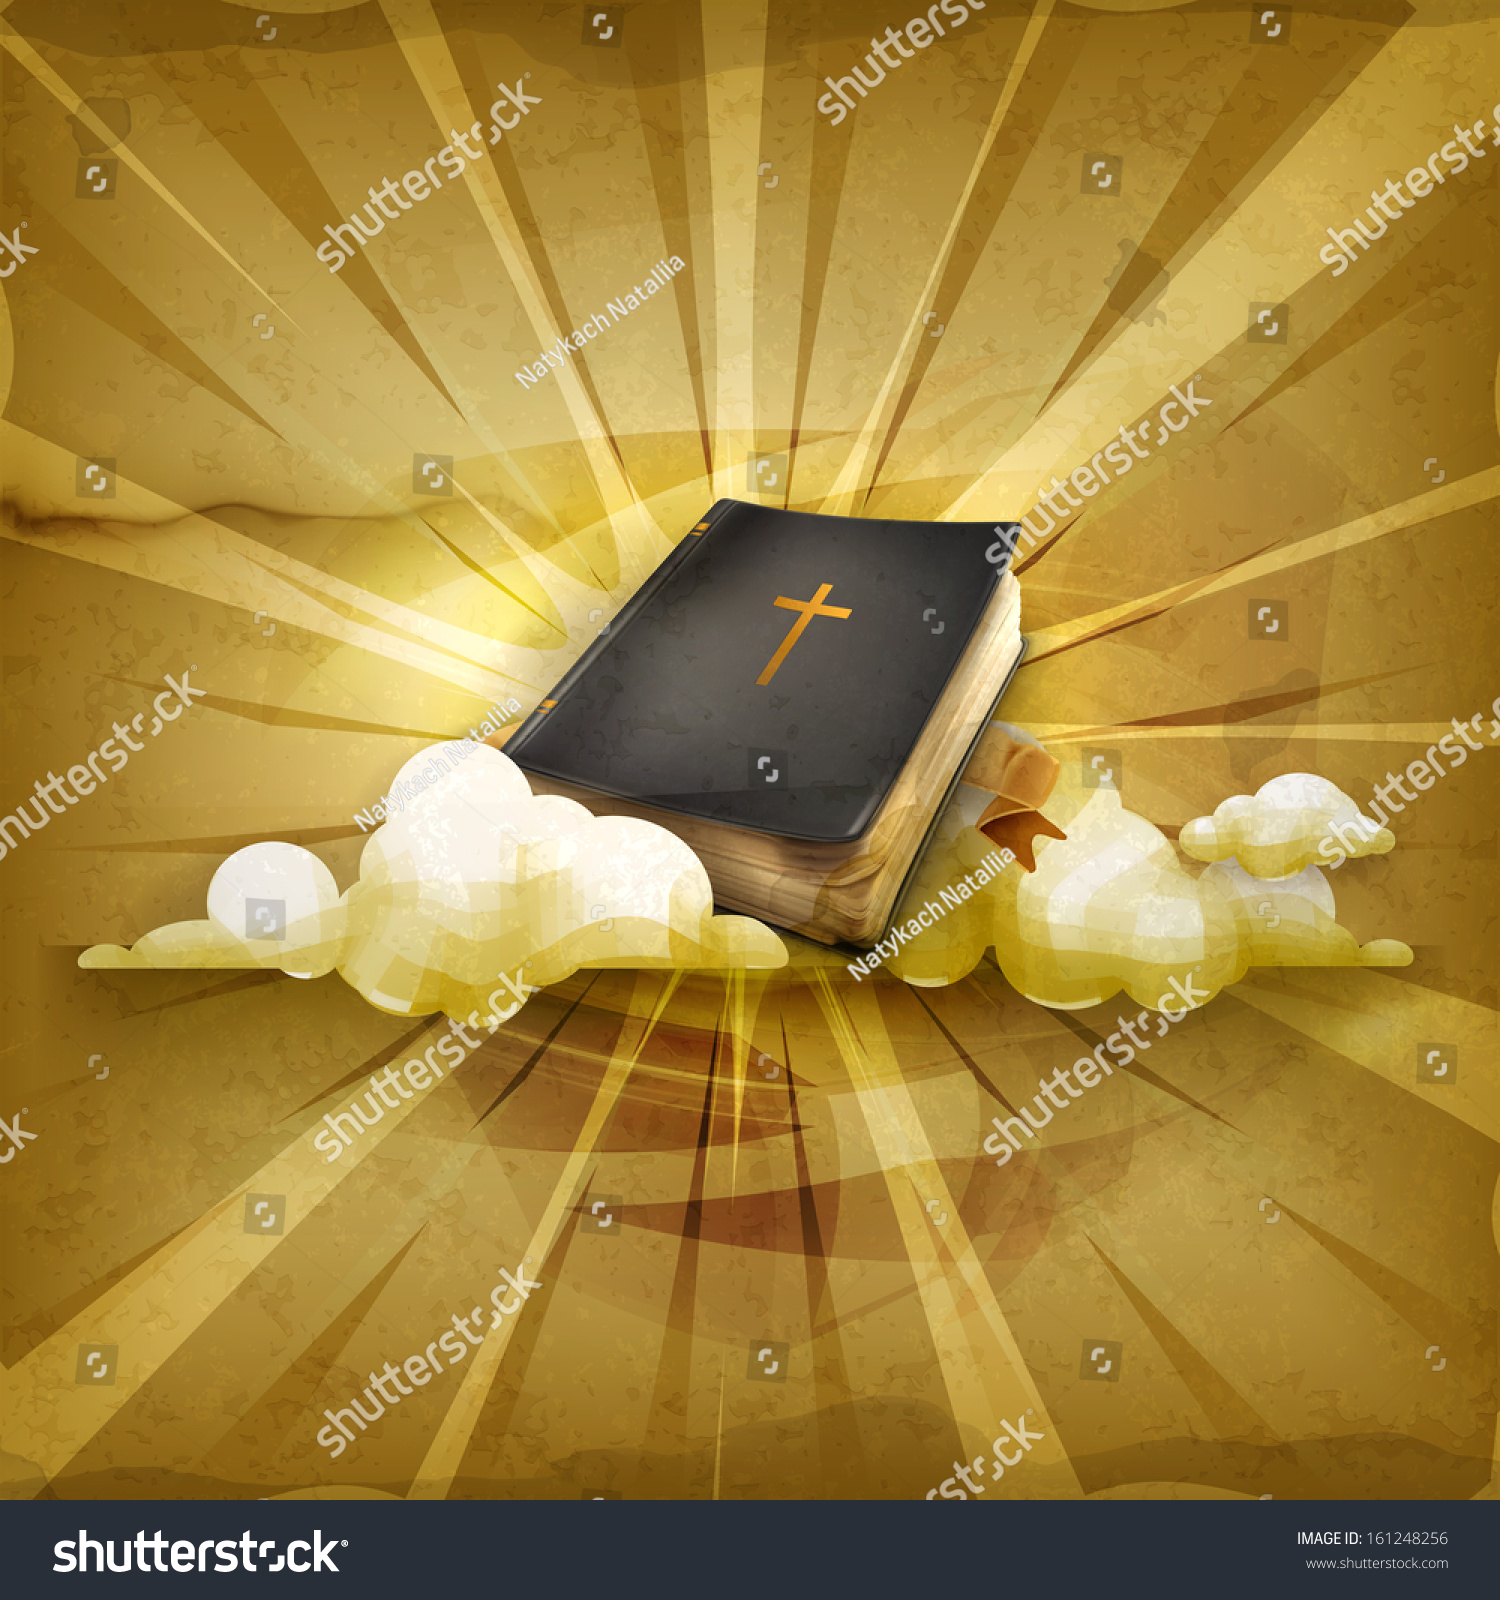 Vintage Leather Look Jeremiah Verse Bible Book Cover Large: Bible Old Style Vector Background Stock Vector 161248256